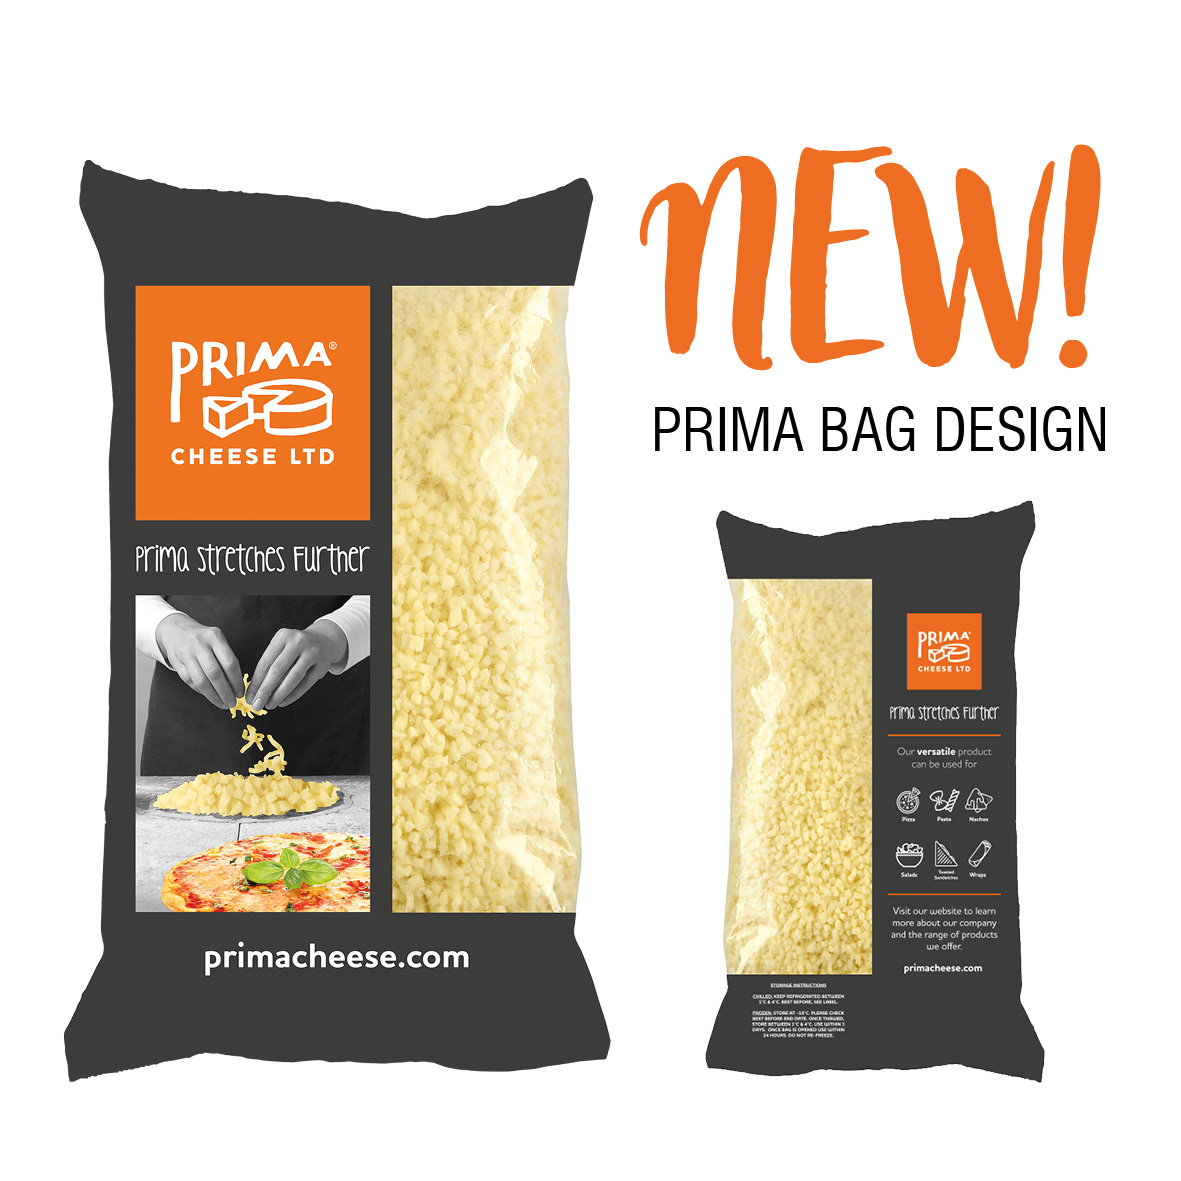 Our Prima Bag has had a Redesign!